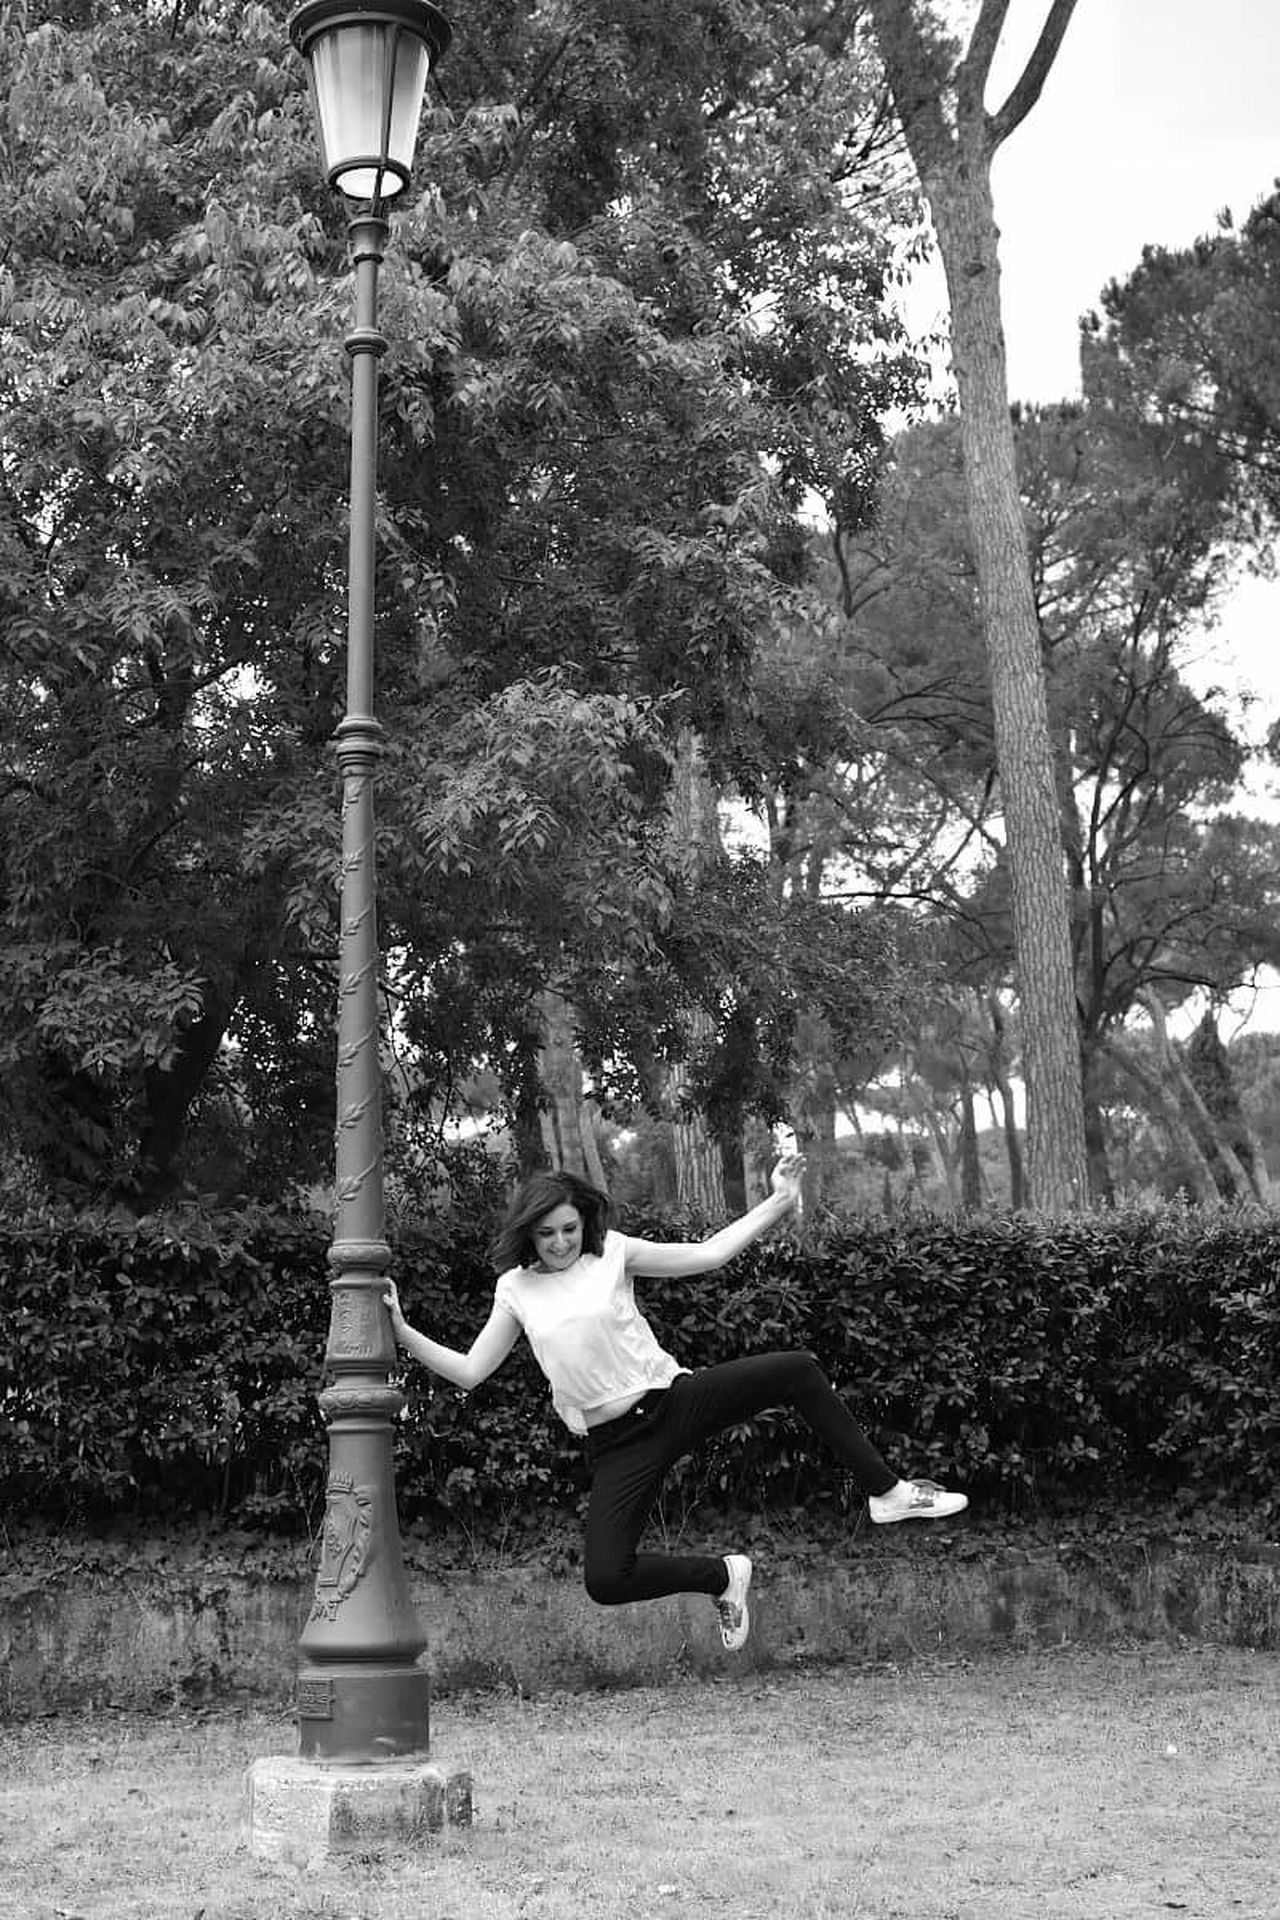 Dance Dance Performance Dance Is Life Dance Photography First Eyeem Photo Rome Italy EyeEm Best Shots - The Streets EyeEm Best Edits EyeEm Gallery EyeEm Best Shots EyeEm Best Shots - Black + White Street Photography Streetphotography Monochrome EyeEm Black And White Villa Borghese Park